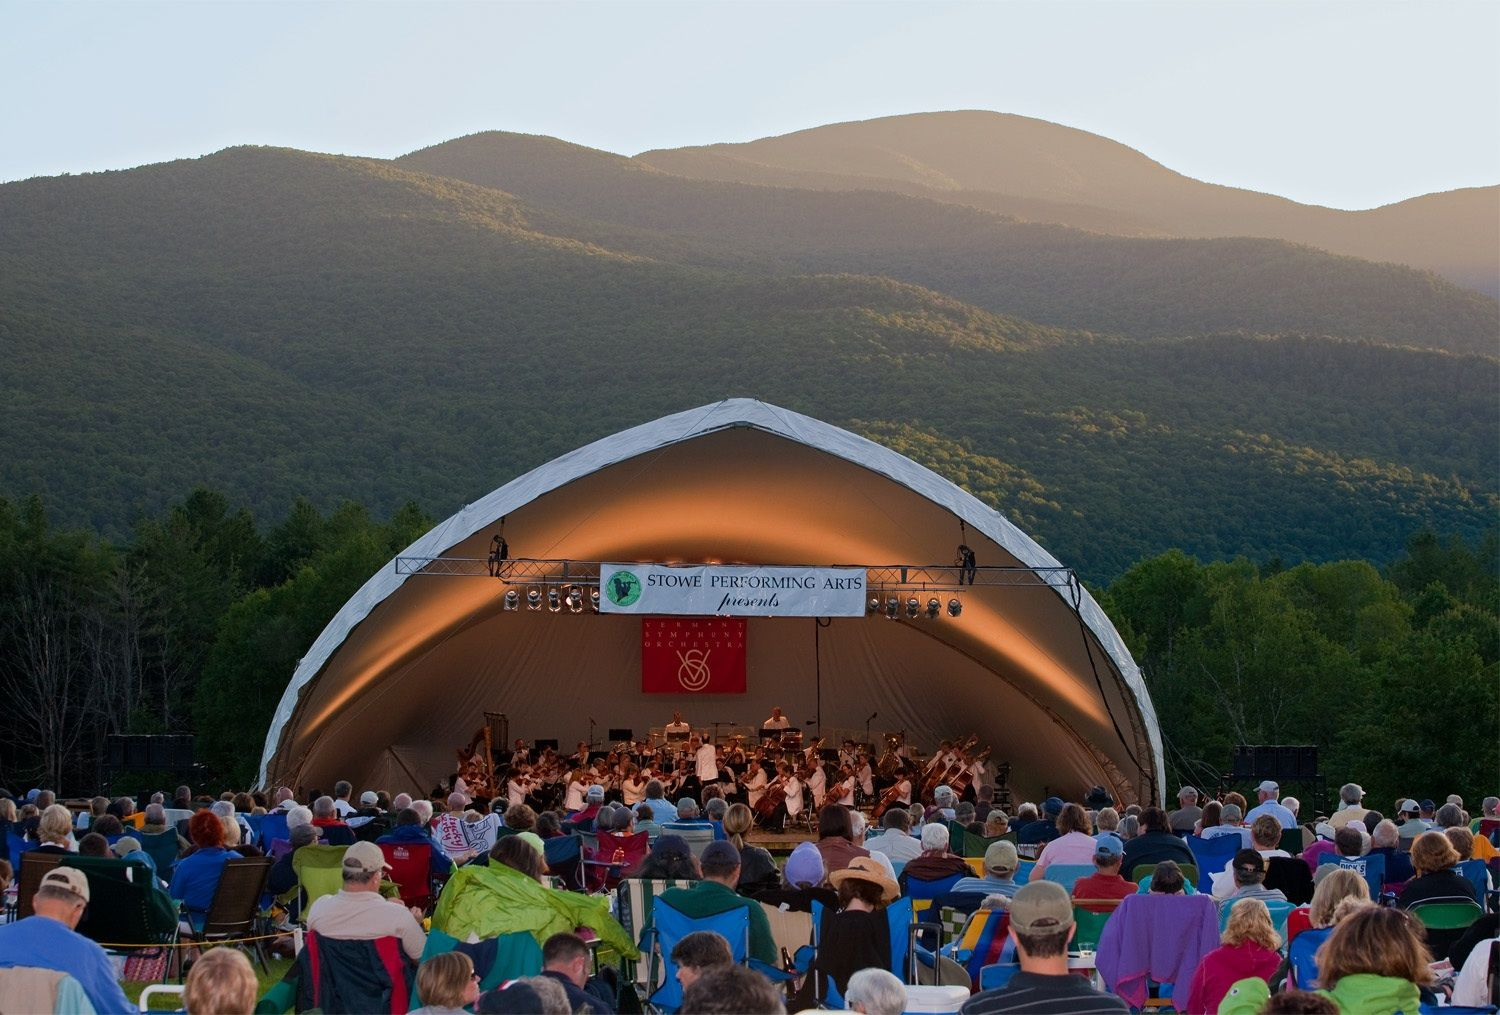 Stowe Performing Arts Center, Stowe, VT | Oh, the places I\u0027ve been ...